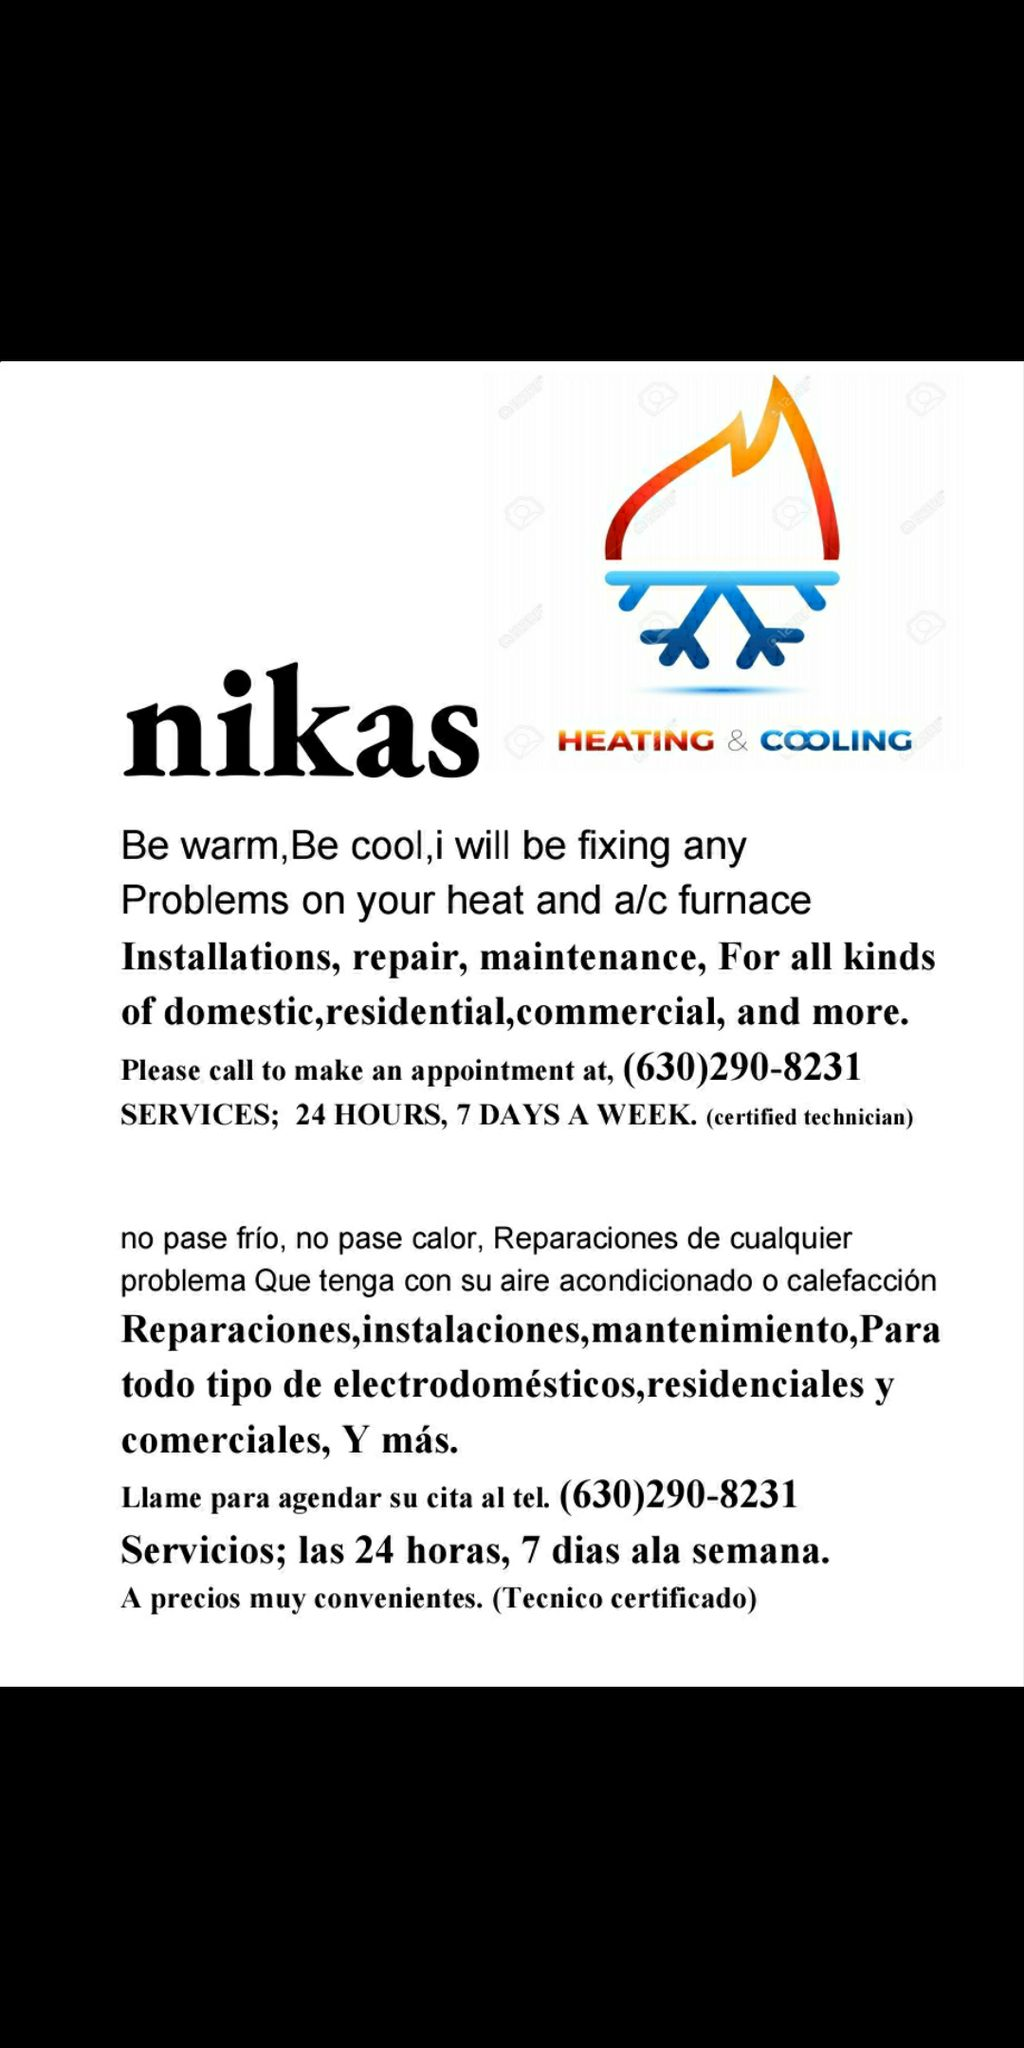 Nikas heating and cooling